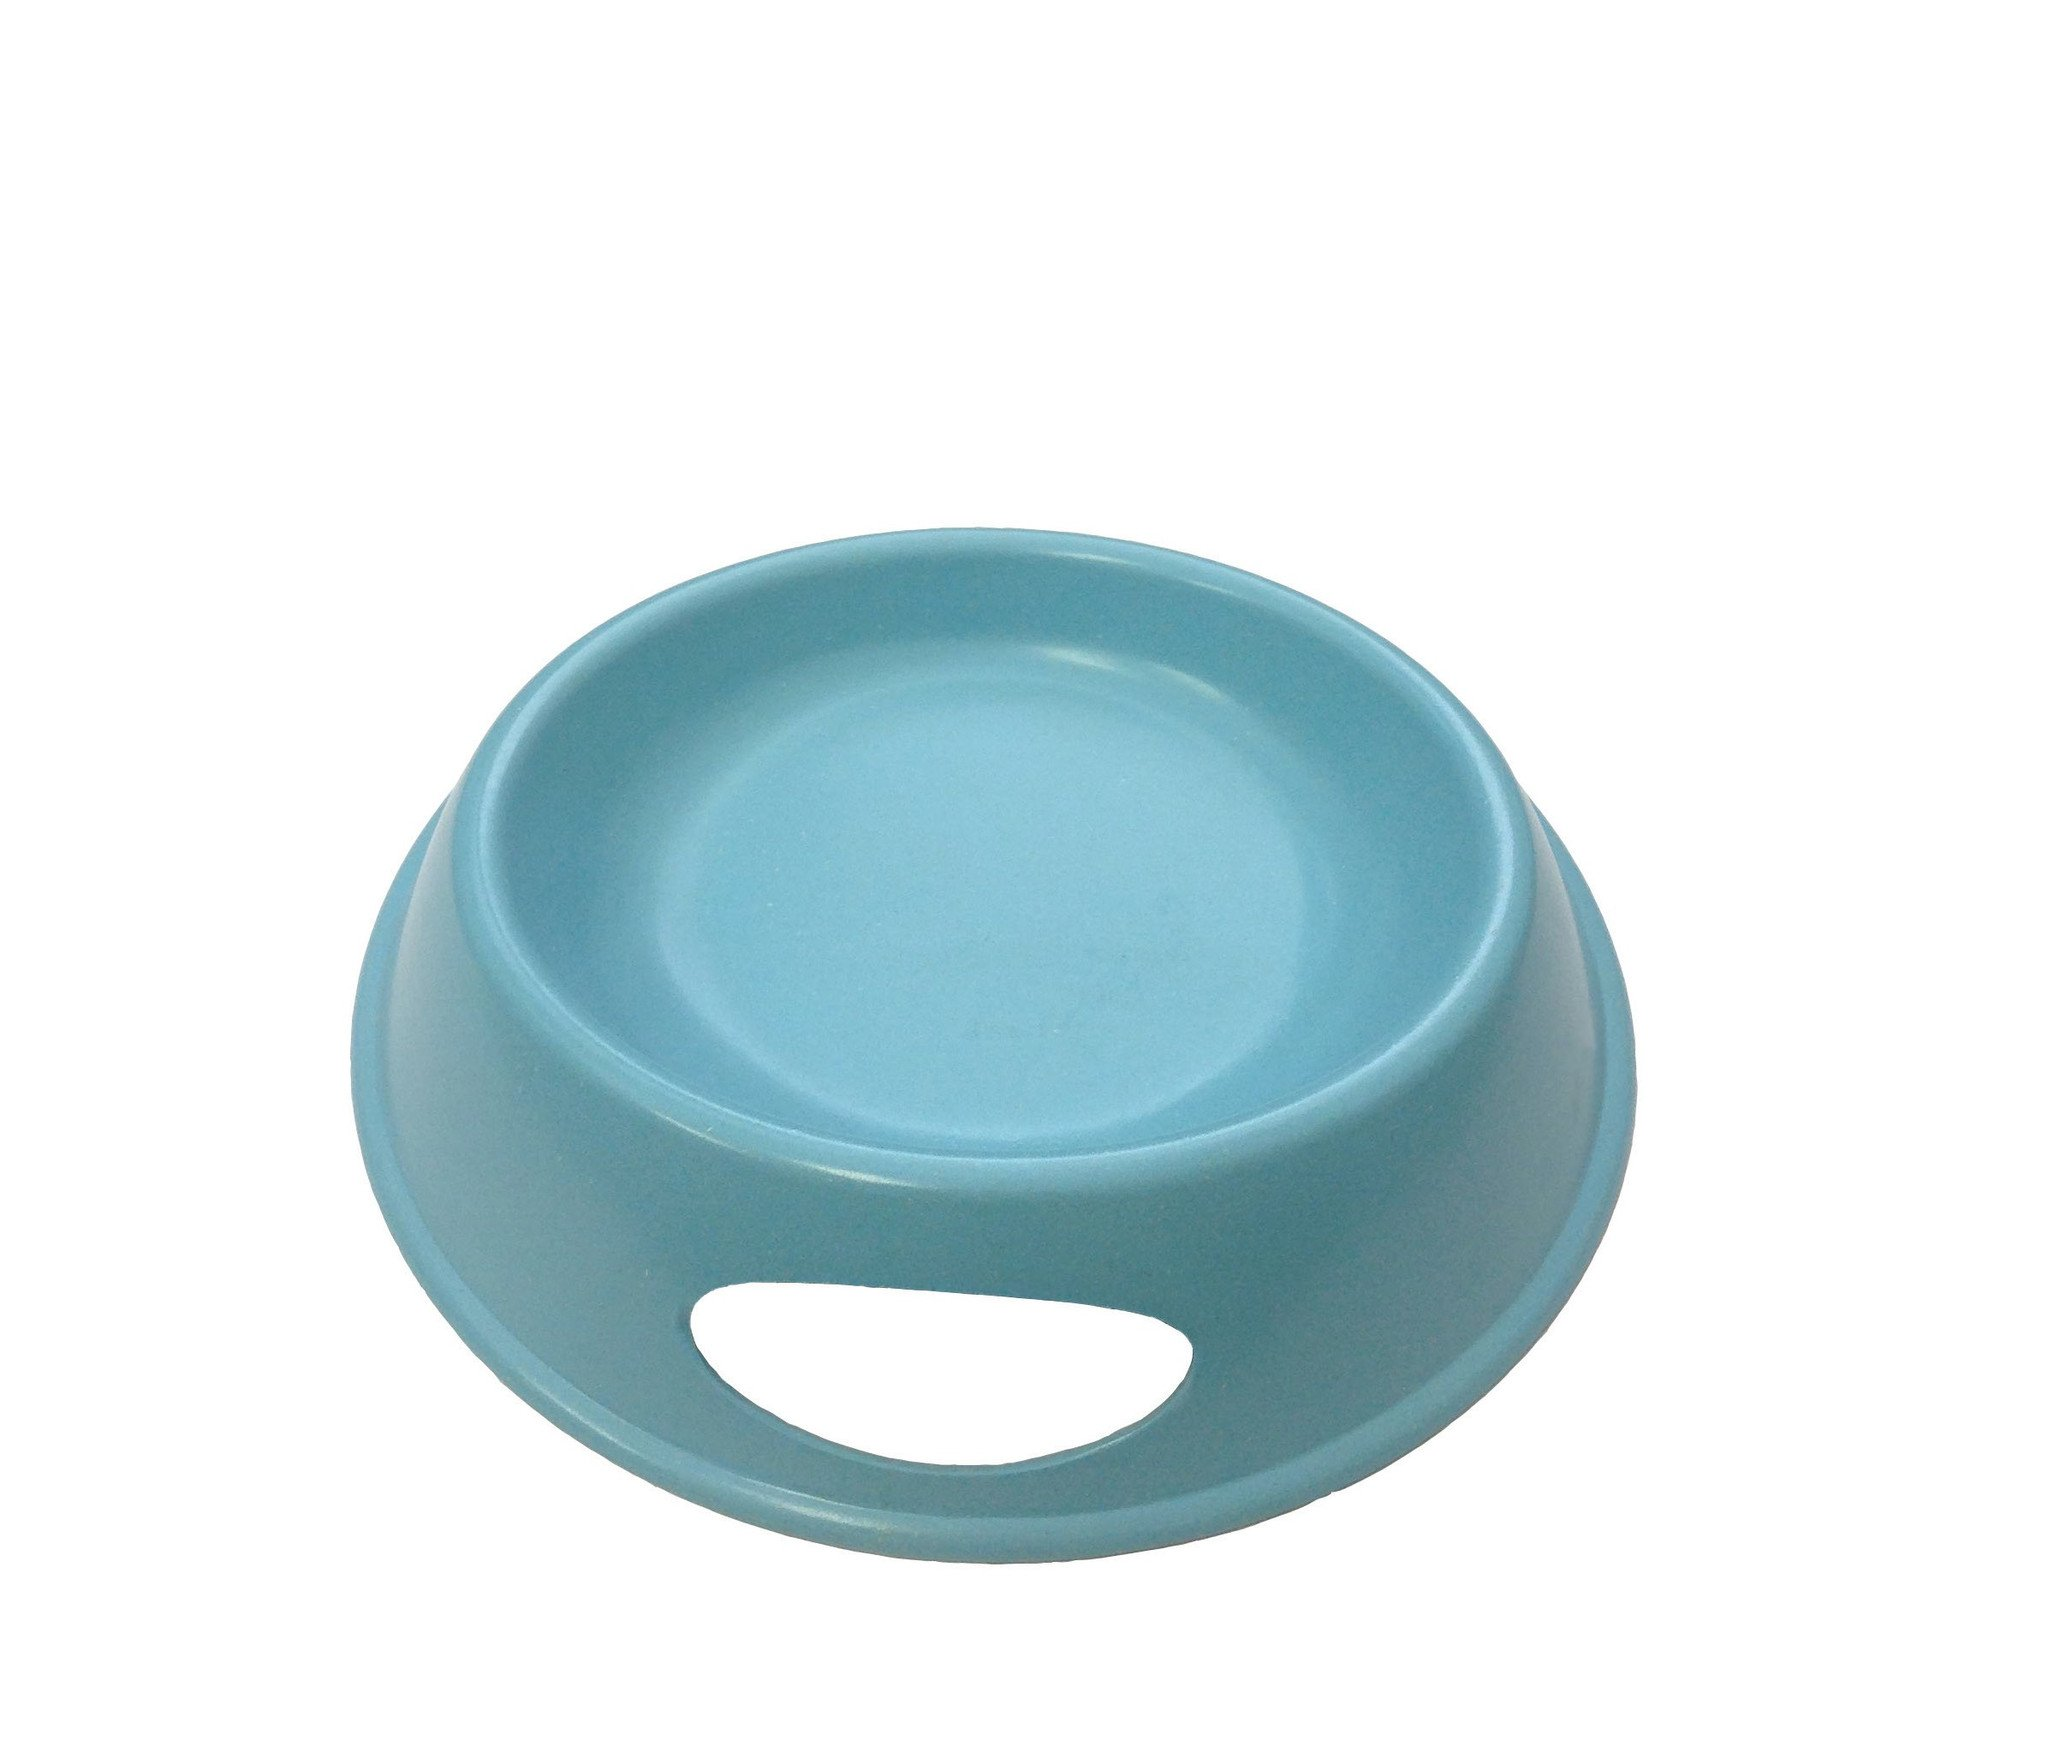 Round Bowl Small For Cats And Dogs - Pet Accessories - Pet Store - Pet supplies